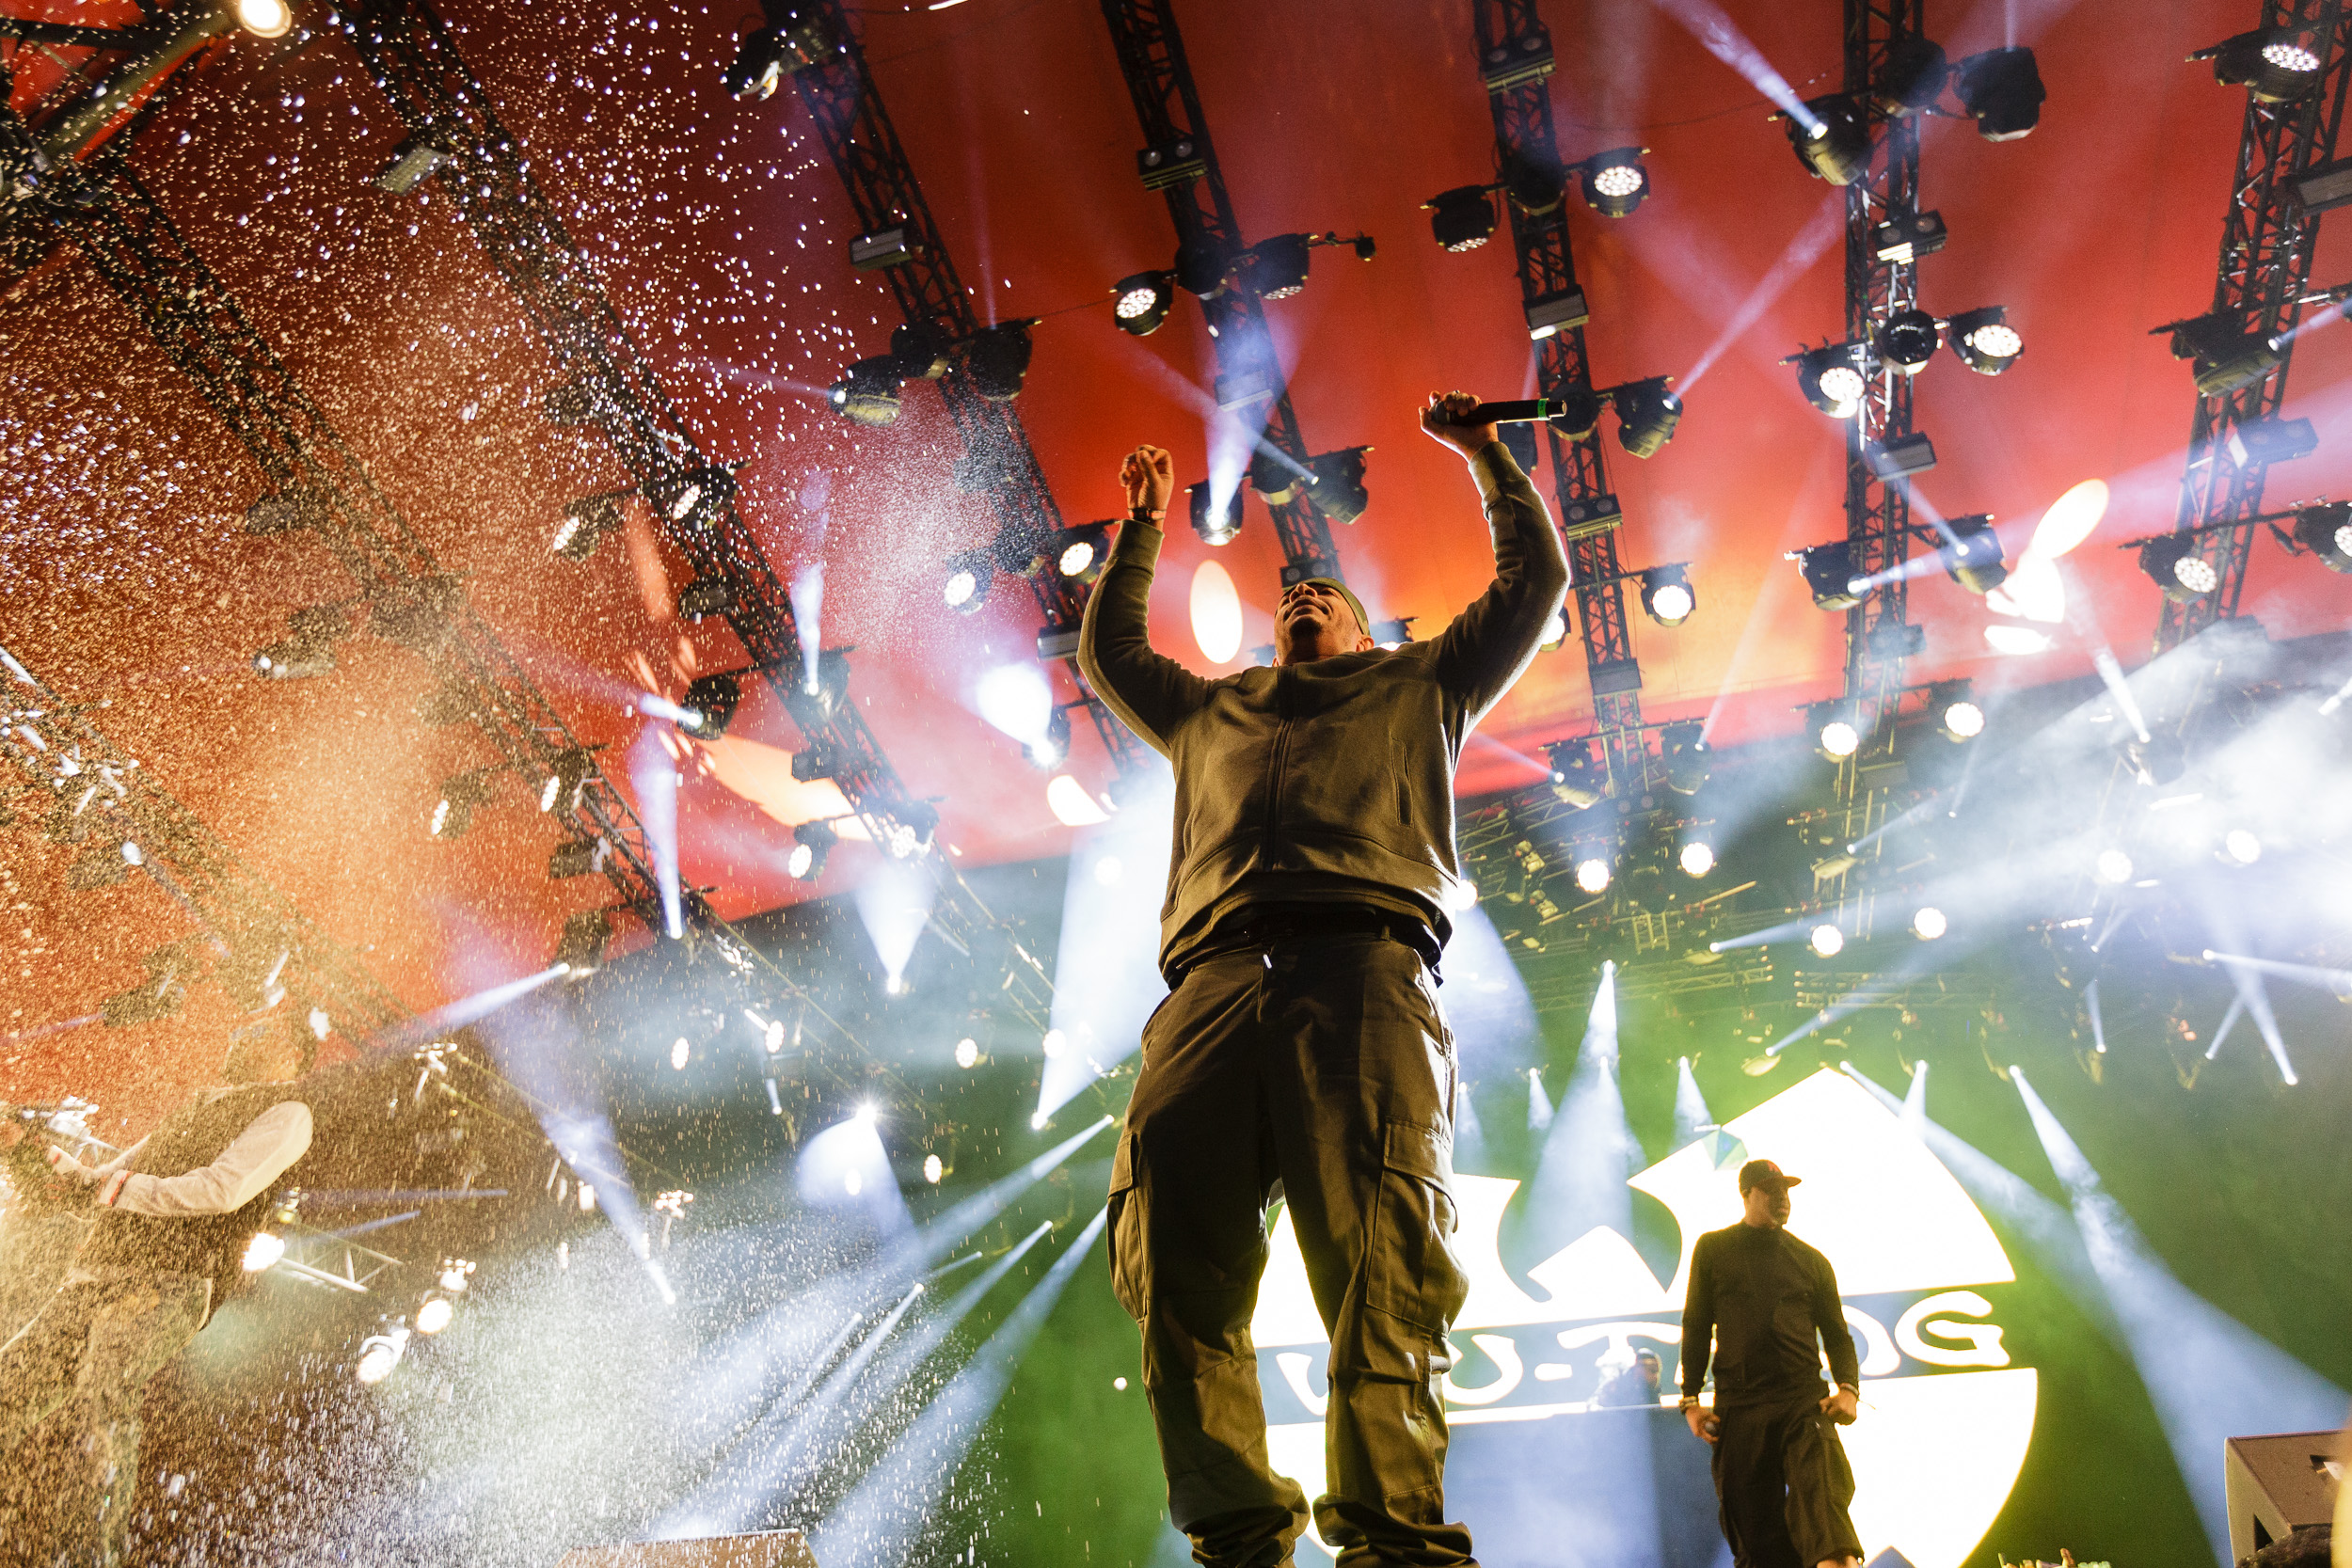 wu-tang clan live at roskilde festival